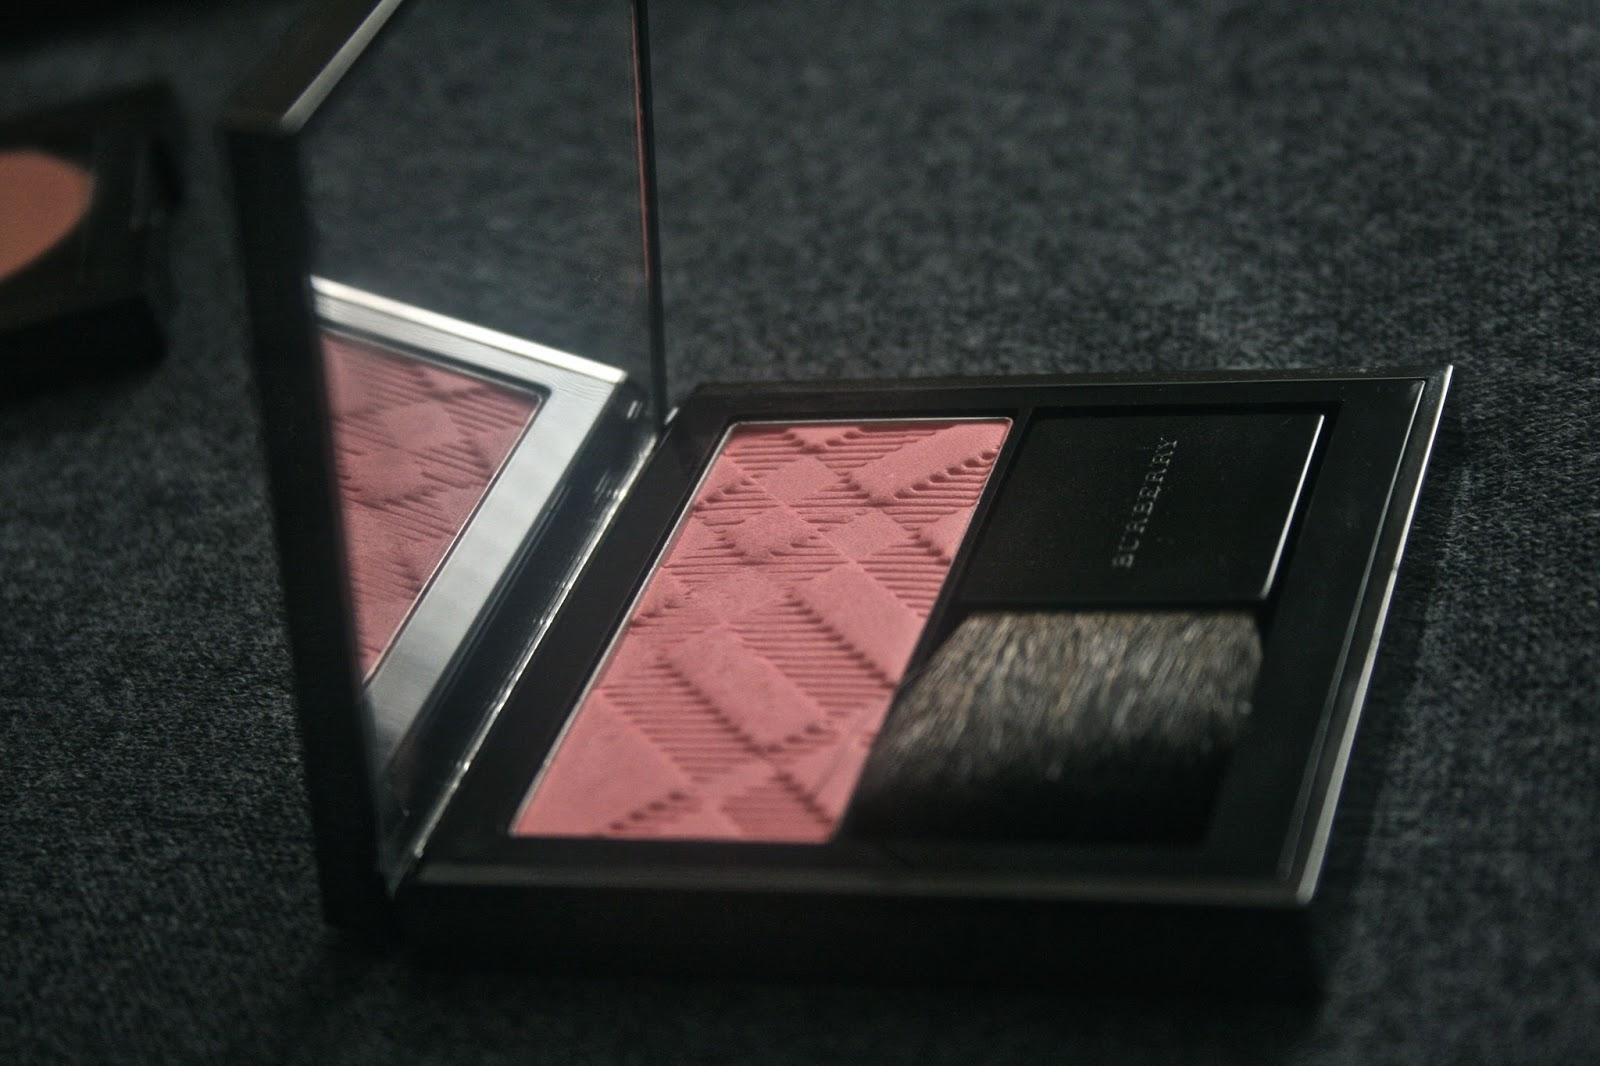 Burberry Light Glow Natural Blush in Blossom Blush